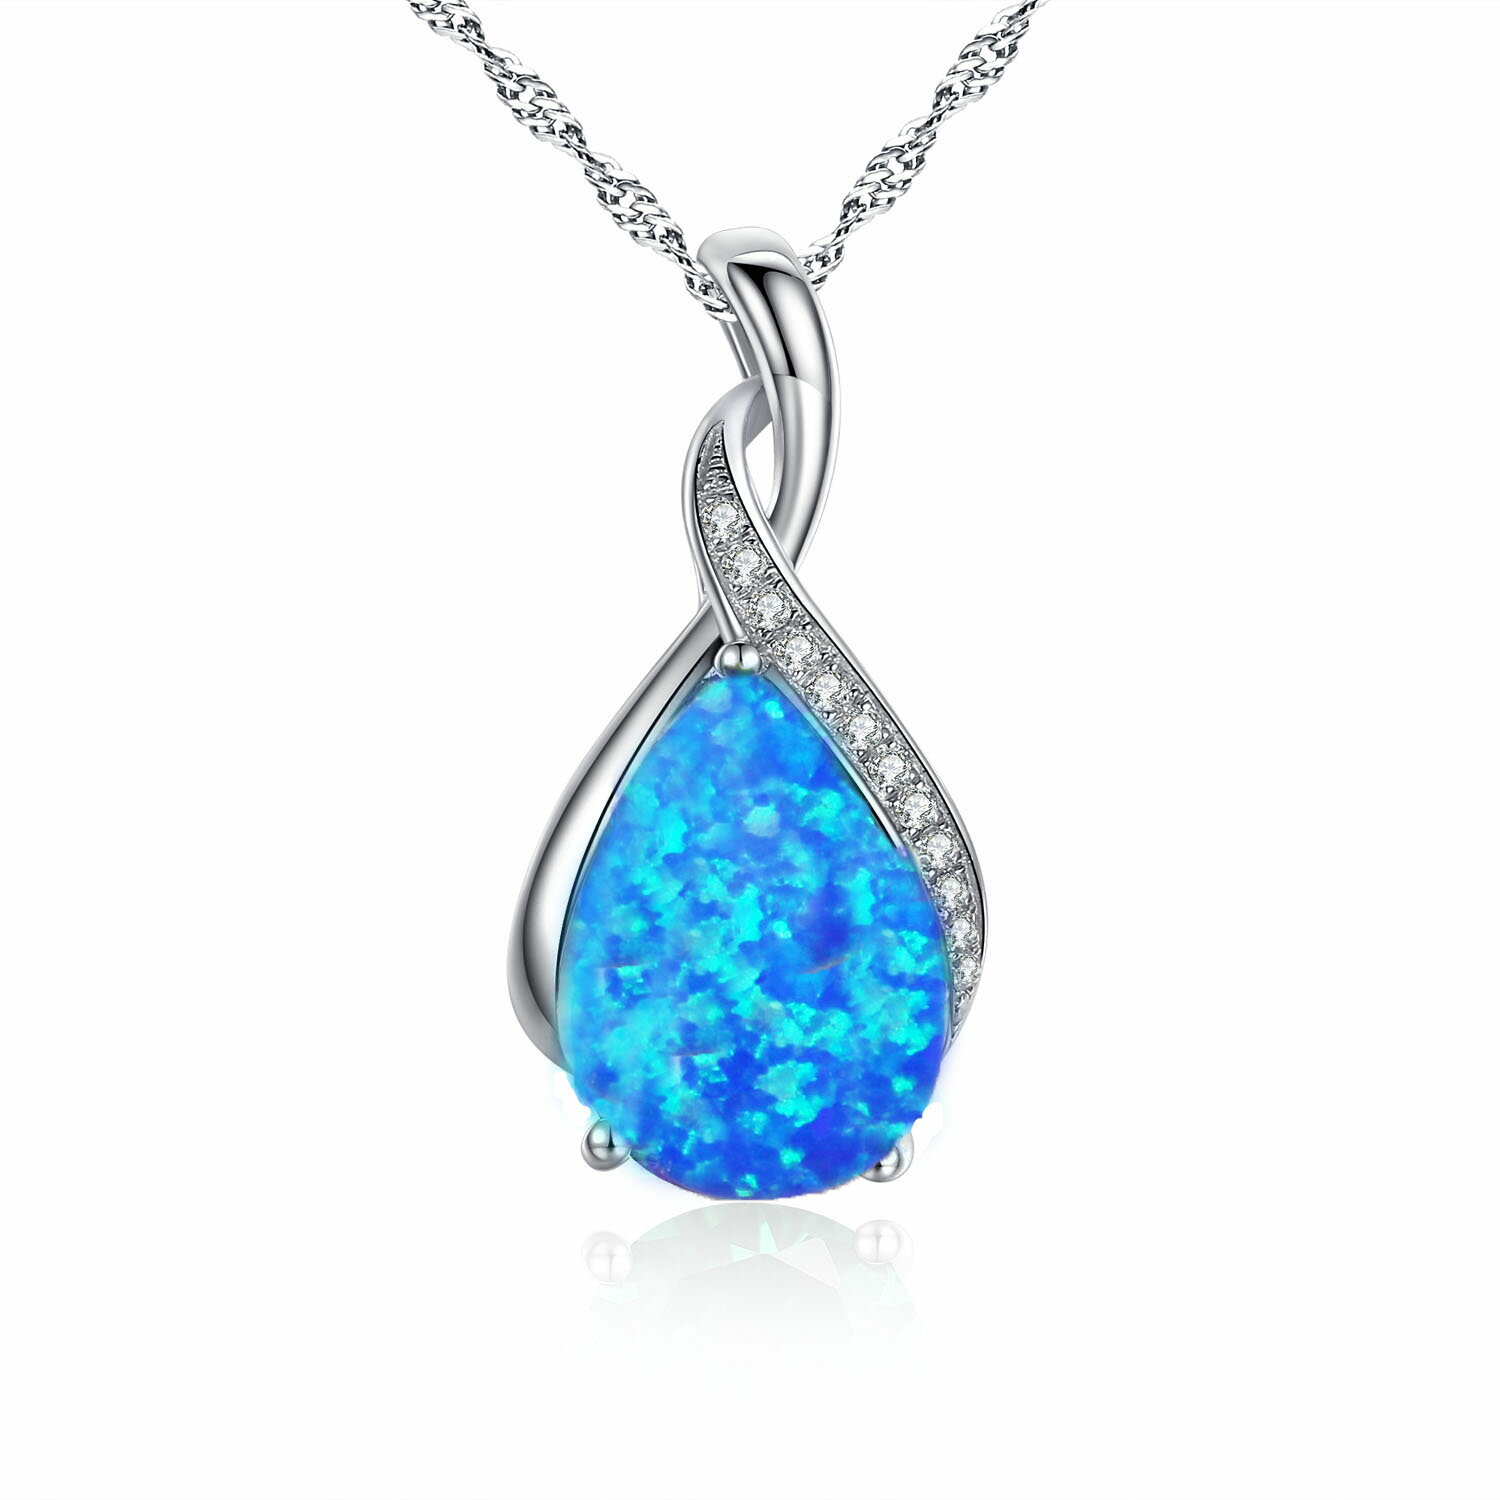 lazuli at necklace naomi sarna org fire for opal lapis multi color diamond pendant sale j jewelry sapphire id necklaces